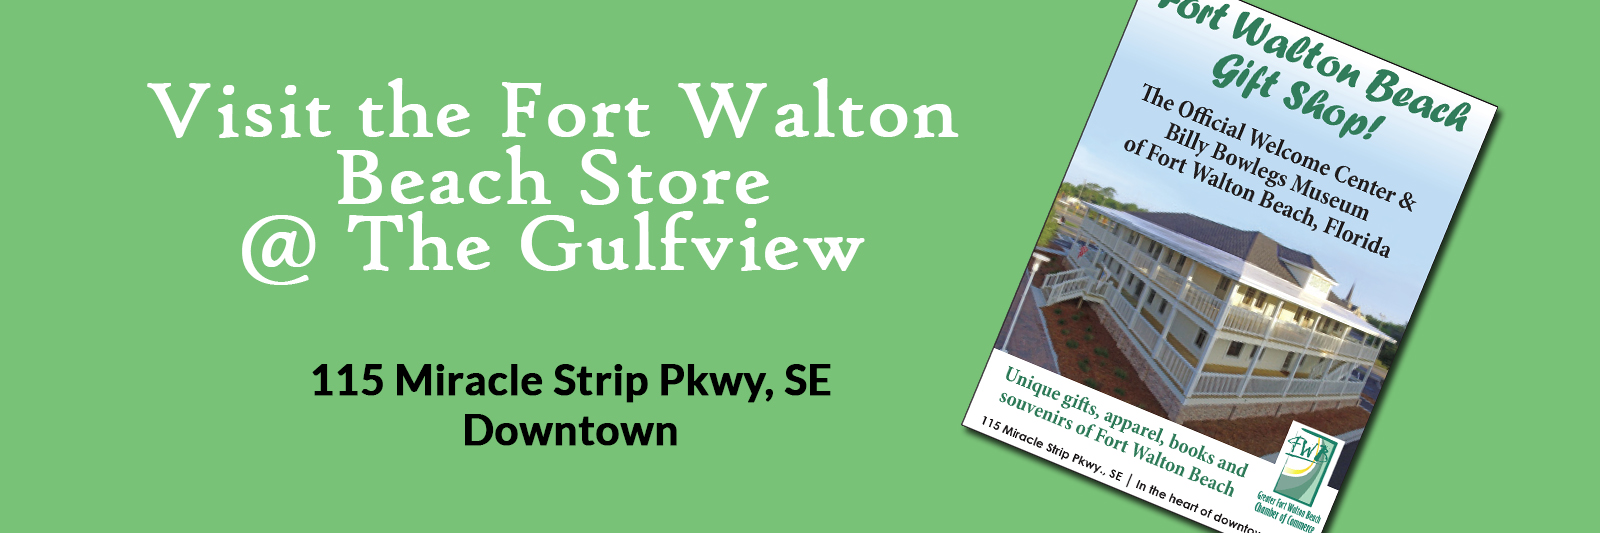 Gulfview-Gift-Shop.jpg